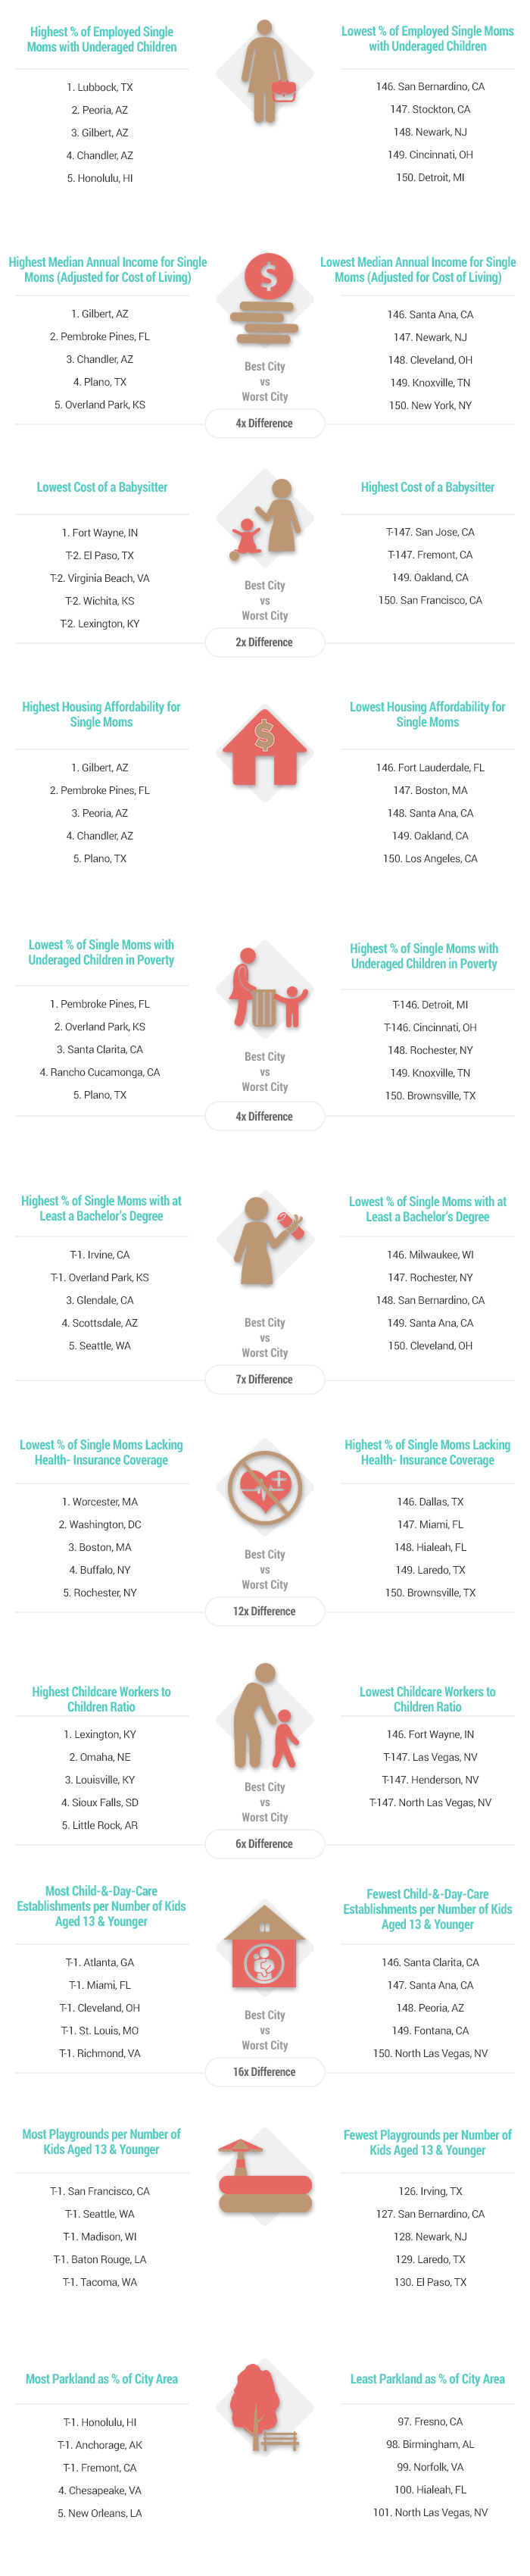 Best and worst cities for singles